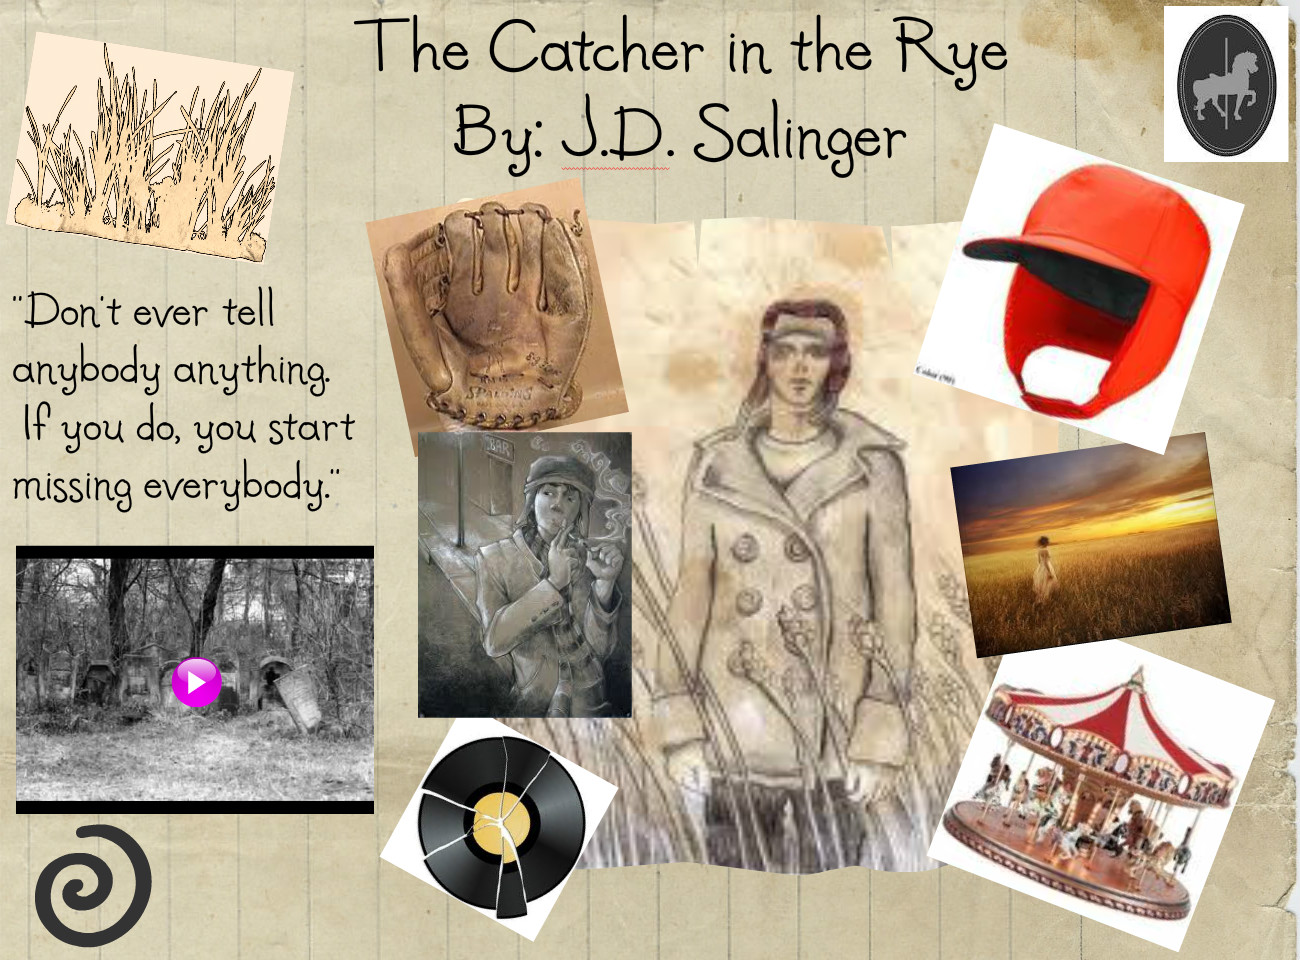 holdens depression by j d salinger essay Free essay: the catcher in the rye, by jd salinger, portrays holden caulfield  as a manic-depressive holden uses three techniques throughout the novel to.